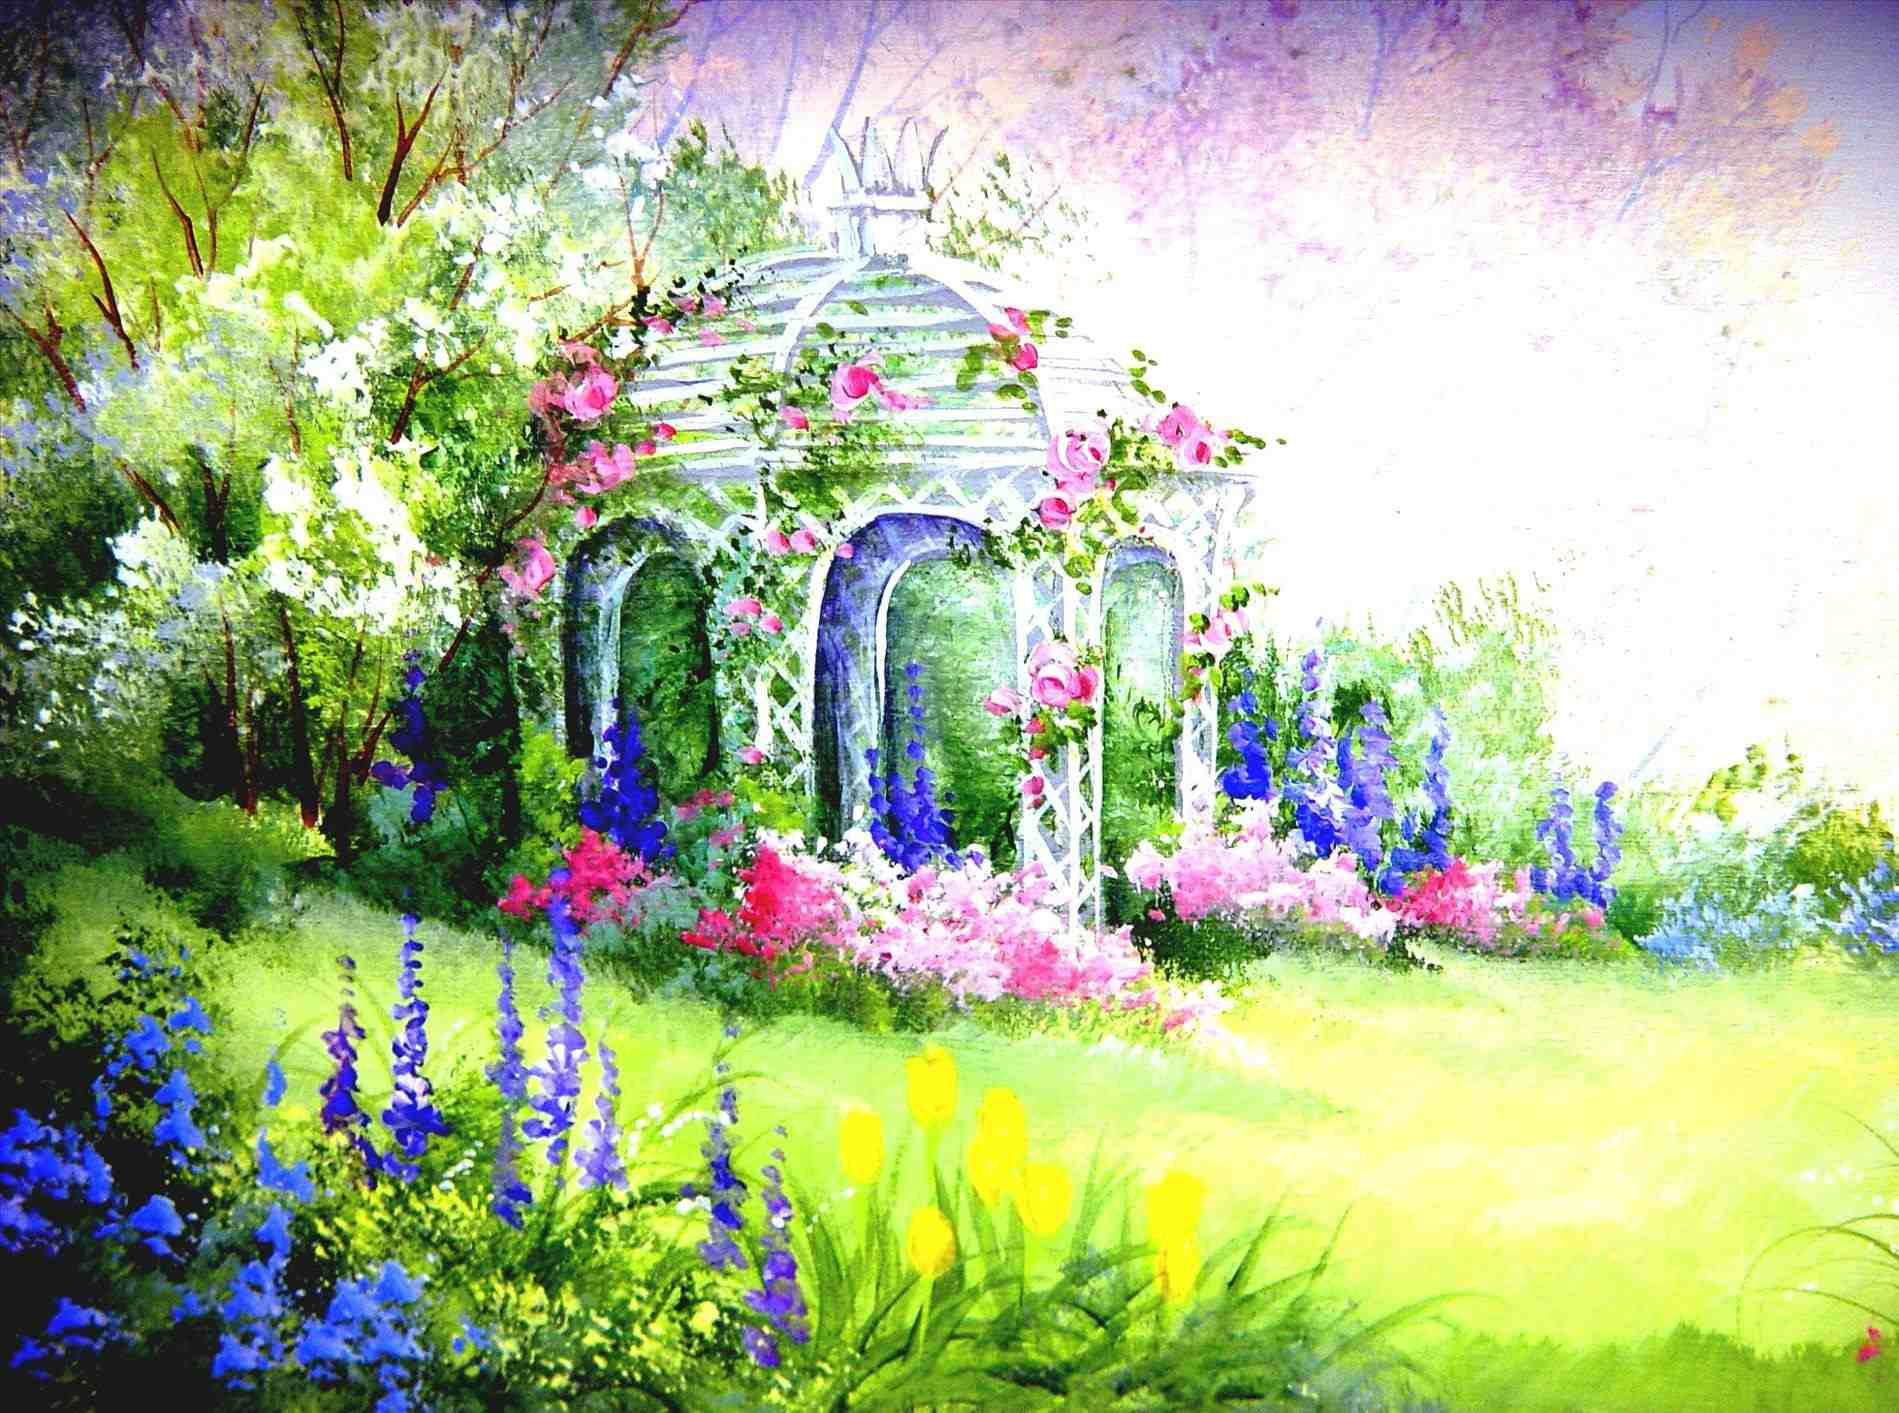 1899x1413 Easy Rharchitecturedsgncom The Easy Watercolor Paintings Of Spring